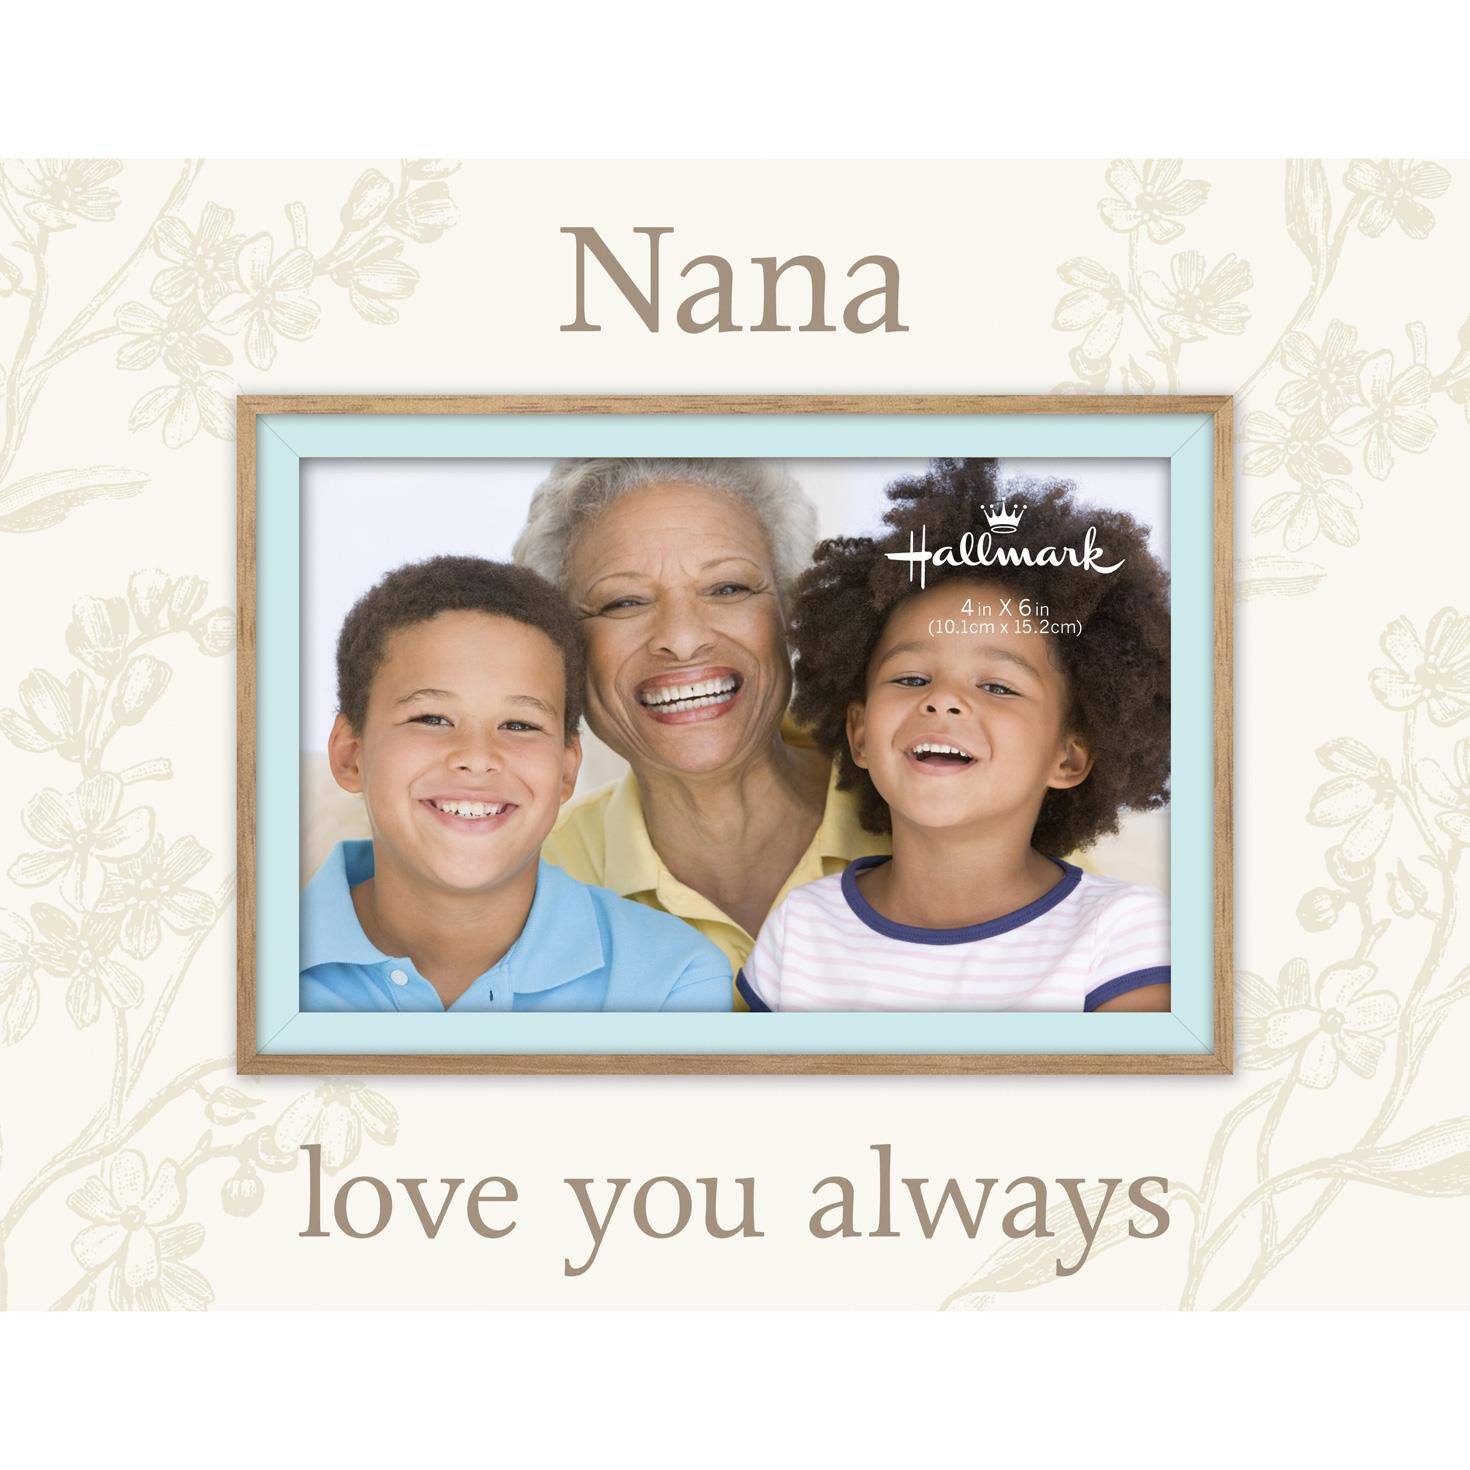 nana love you always malden picture frame 4x6 picture frames hallmark - Nana Picture Frame